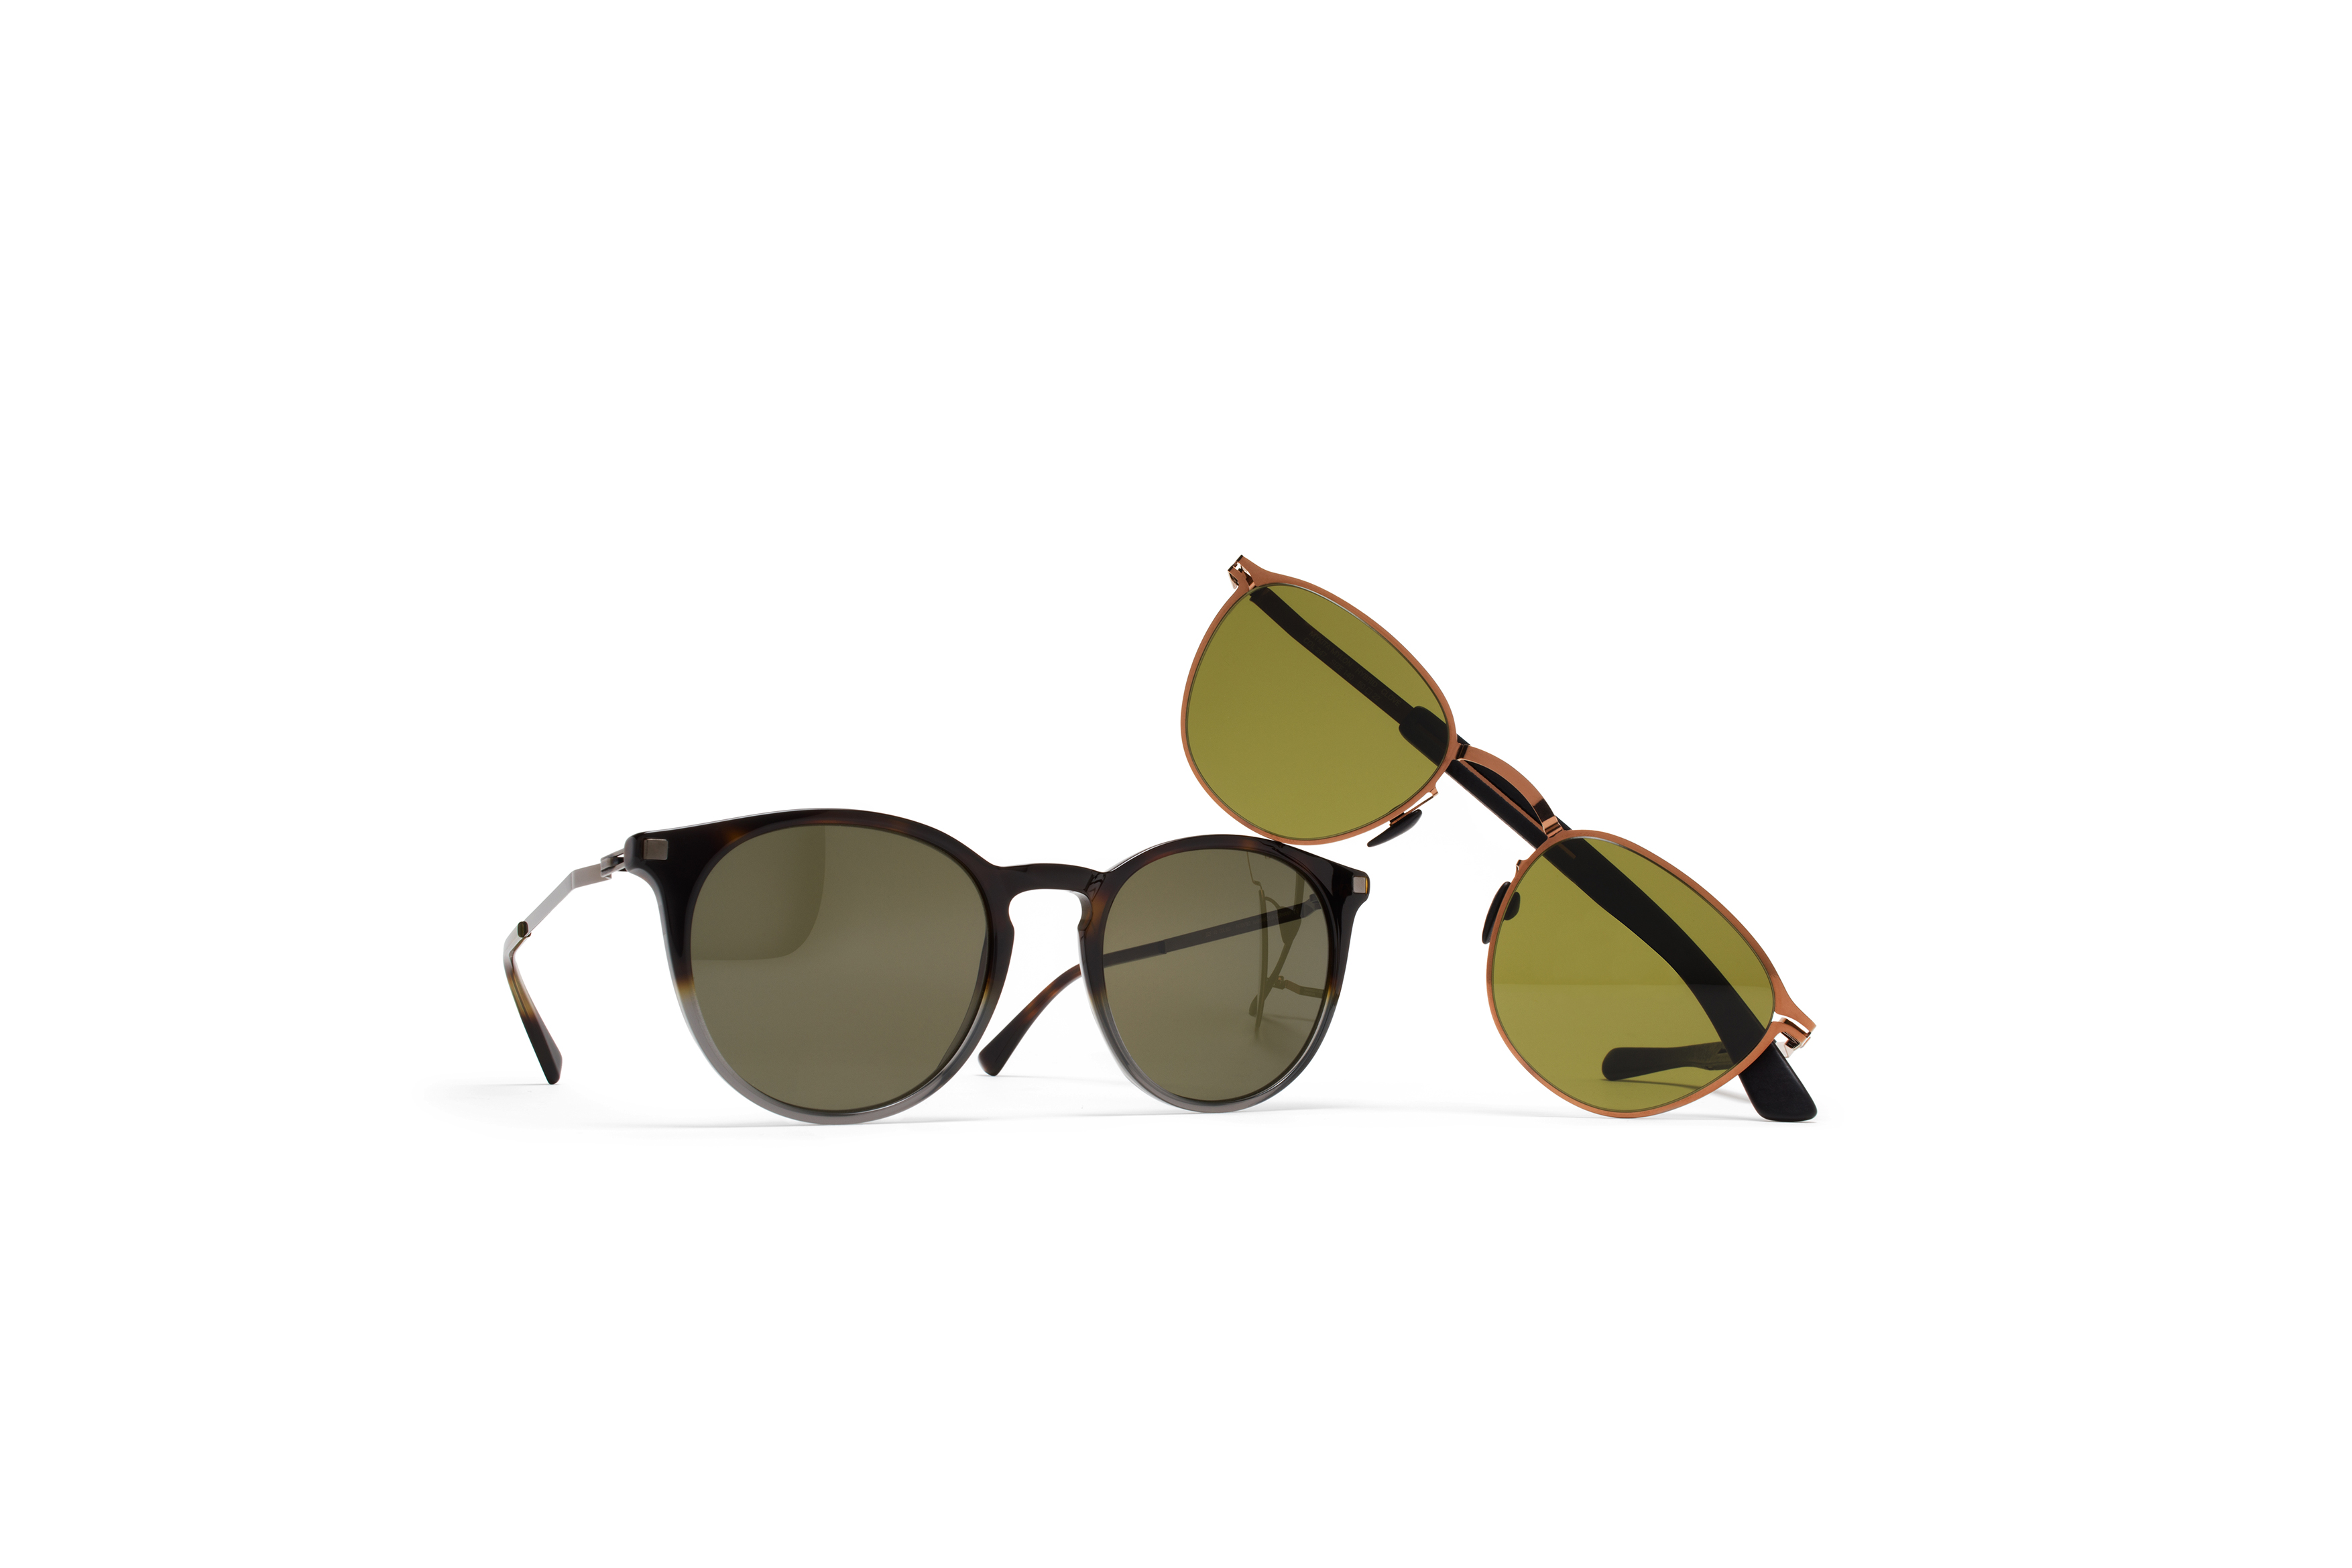 MYKITA Mylon Sun Clove Mh5 Shinycopper Pitch Black Hollygreen Solid Lite Sun Keelut Santiago Gradient Shi